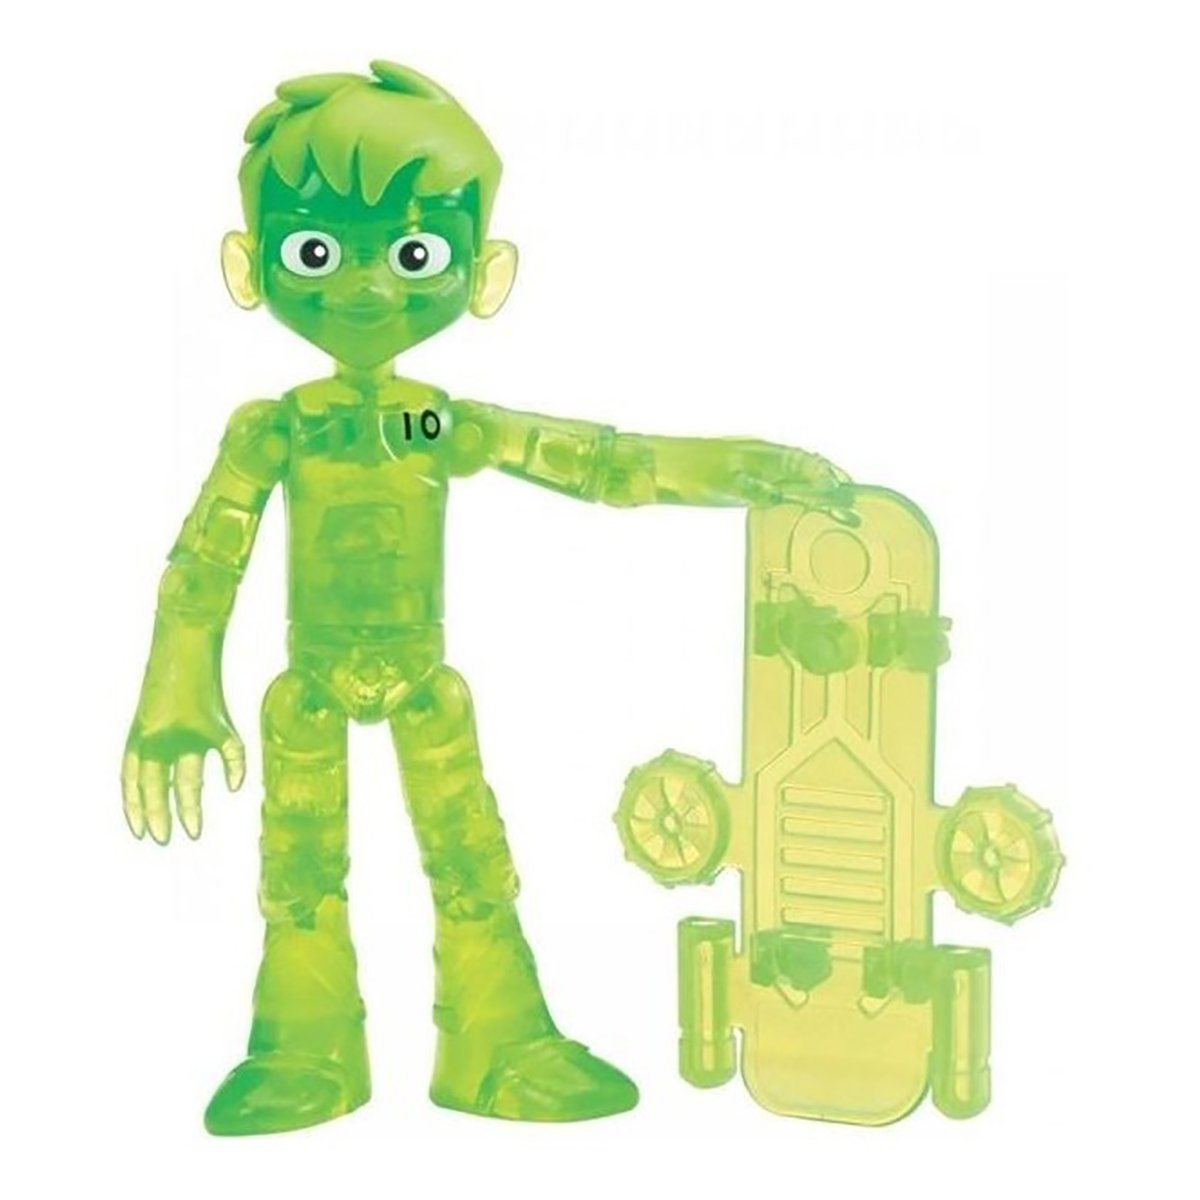 Figurina Ben 10 Out of the Omnitrix, Glitch Ben, 76158, 12 cm